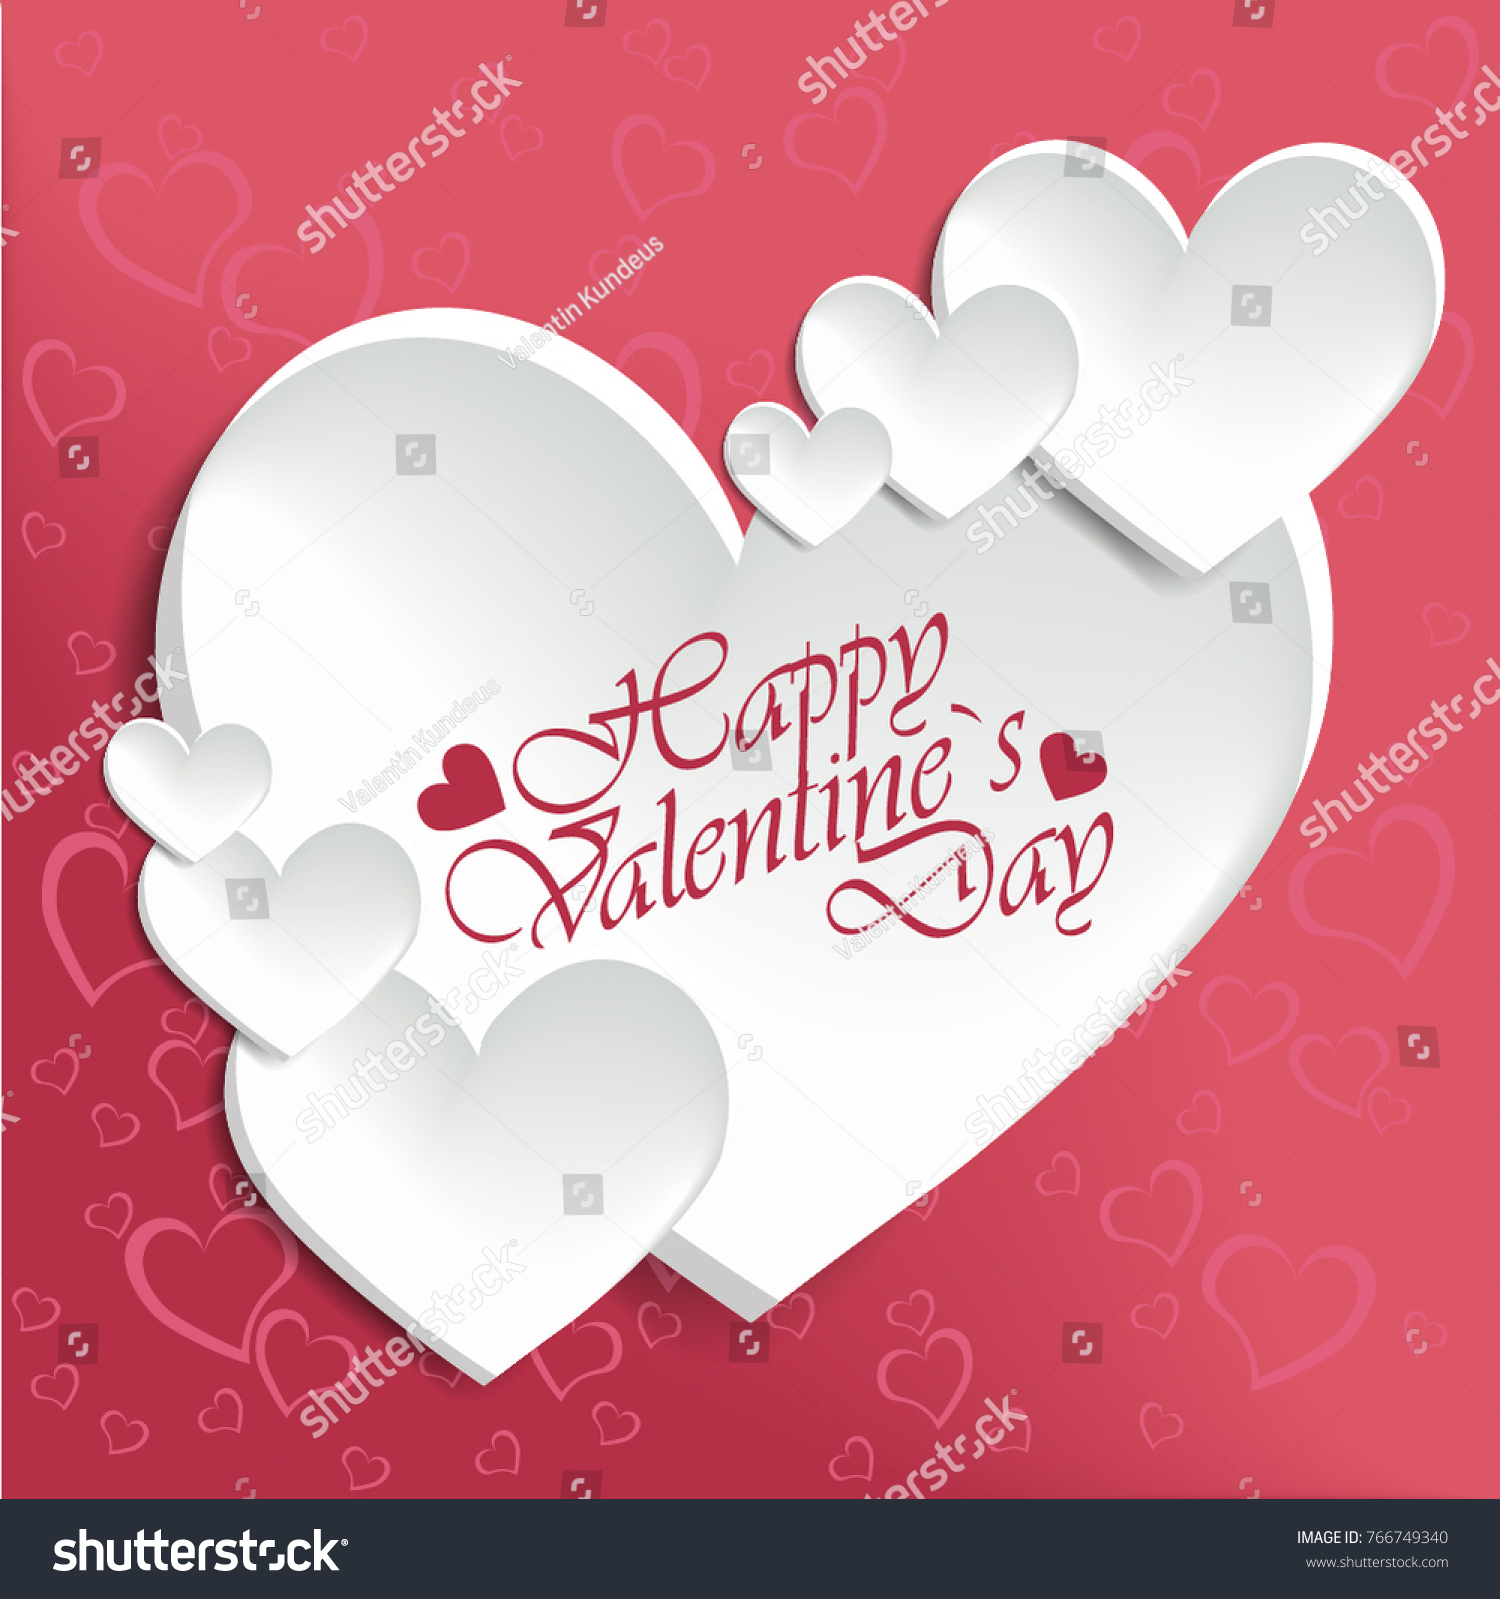 Happy Valentines Day Latest Festival Wishes And Greeting Nice Hd